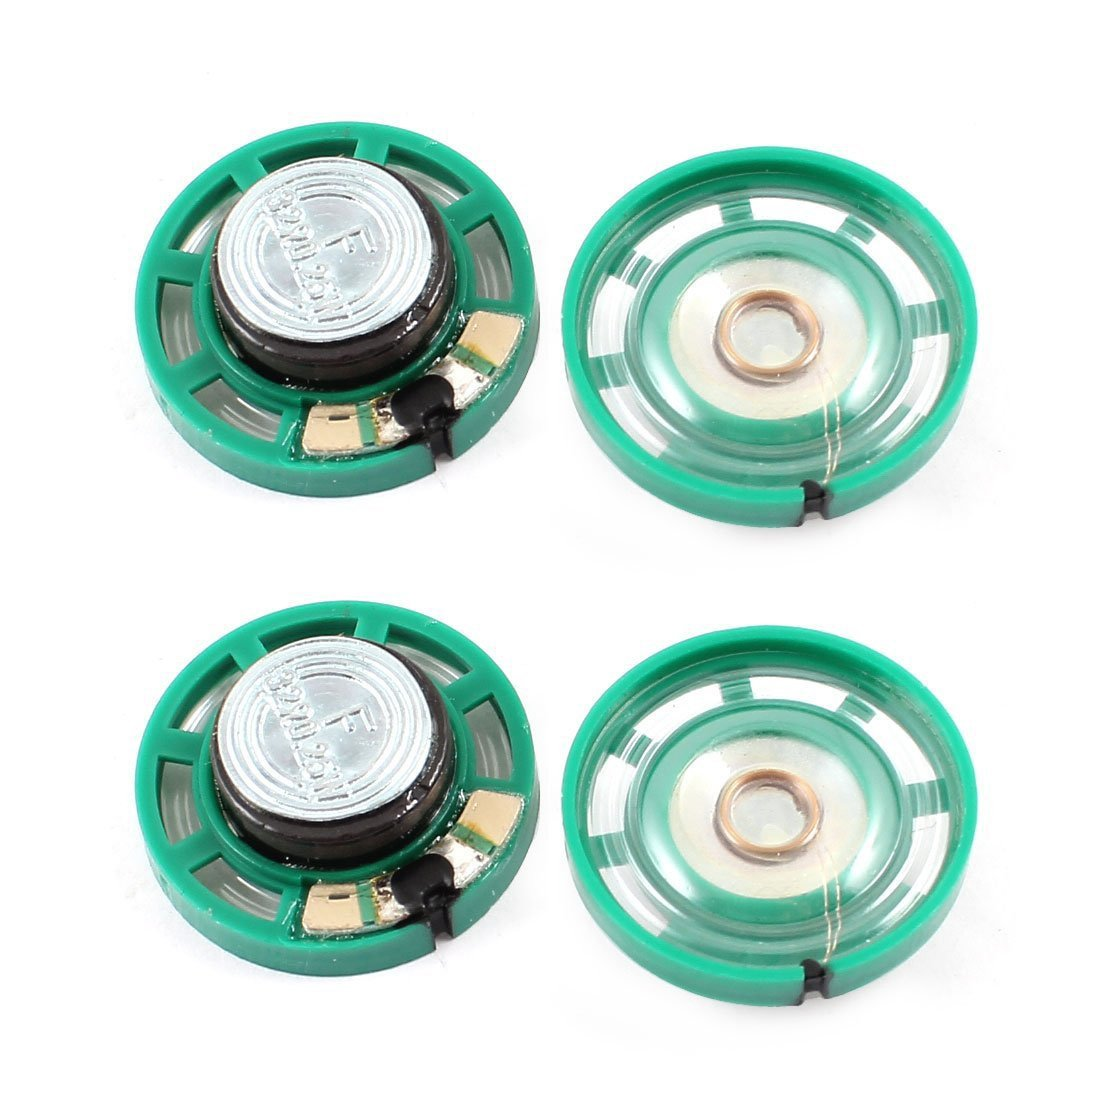 SODIAL(R) 0.25 W 32 Ohm Plastic 4 Magnetic Speaker with 27 mm Diameter Green + Silver